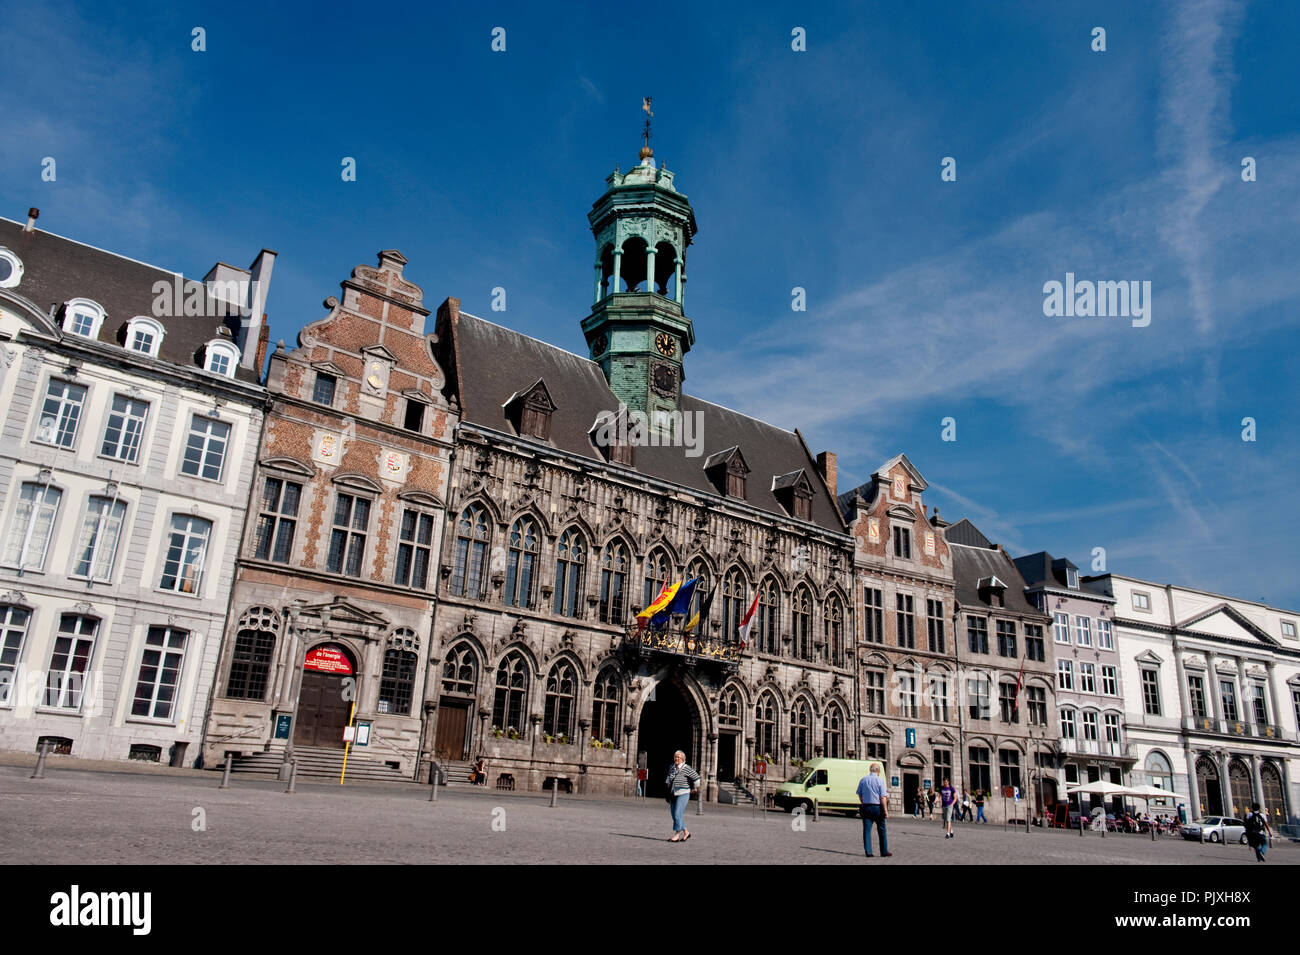 The 15th Century Town Hall of Mons, originally conceived by Mathieu de Layens (Belgium, 26/04/2011) - Stock Image